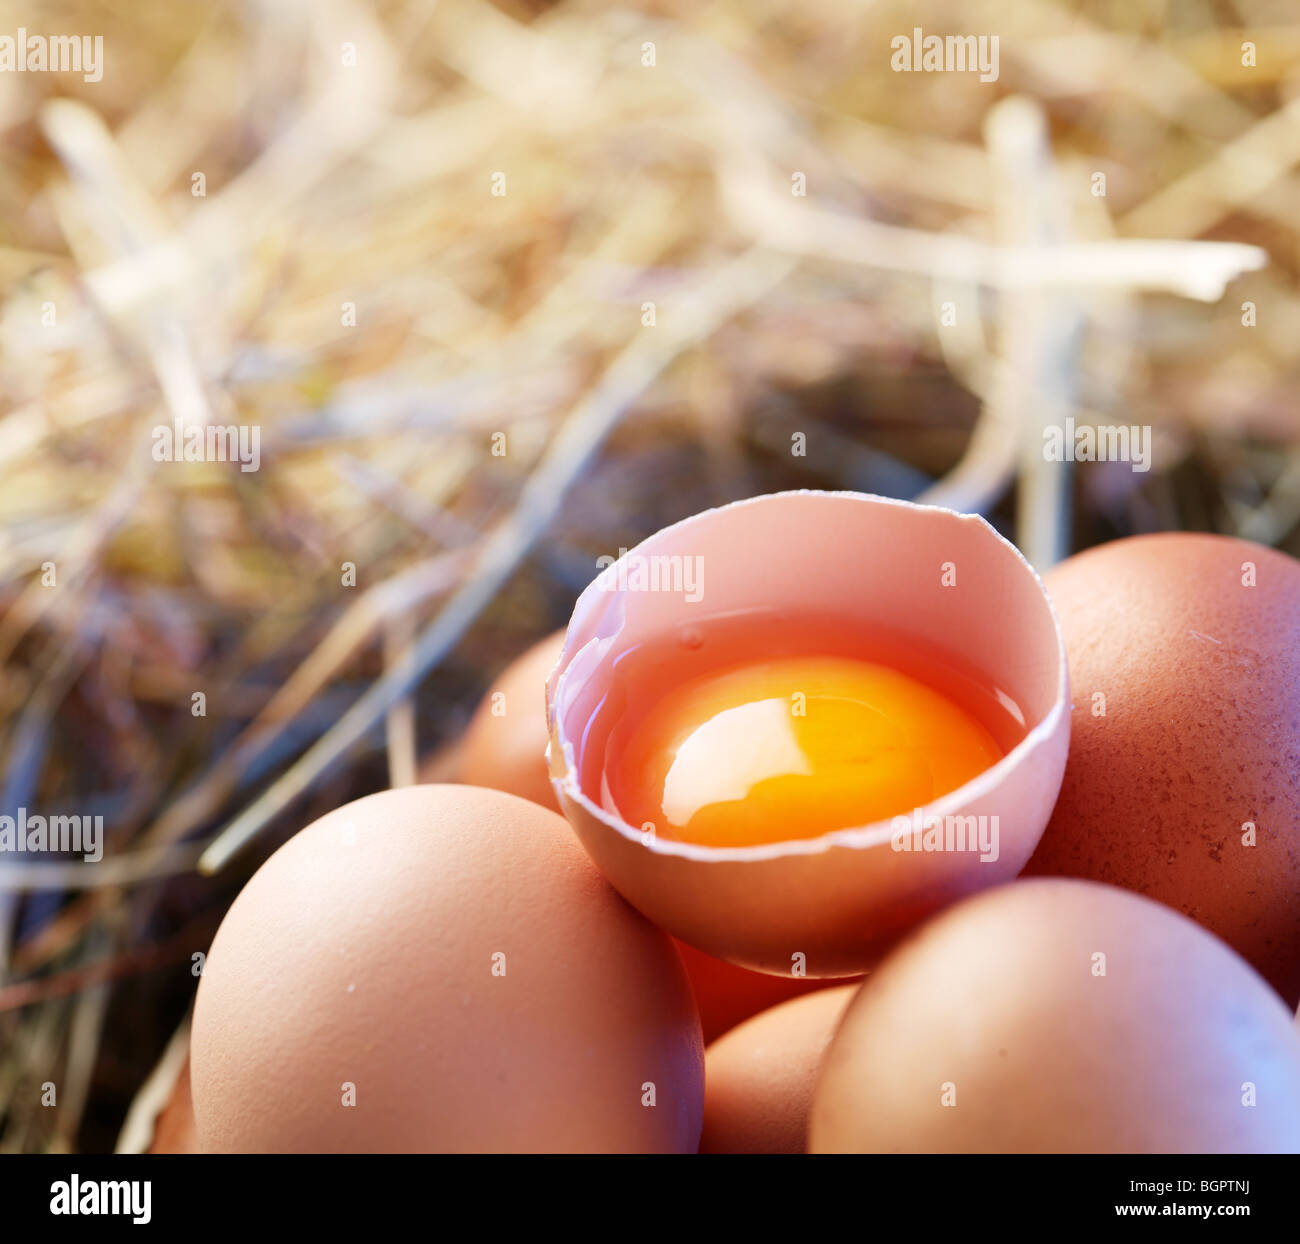 Chicken eggs in the straw with half a broken egg in the morning light. - Stock Image